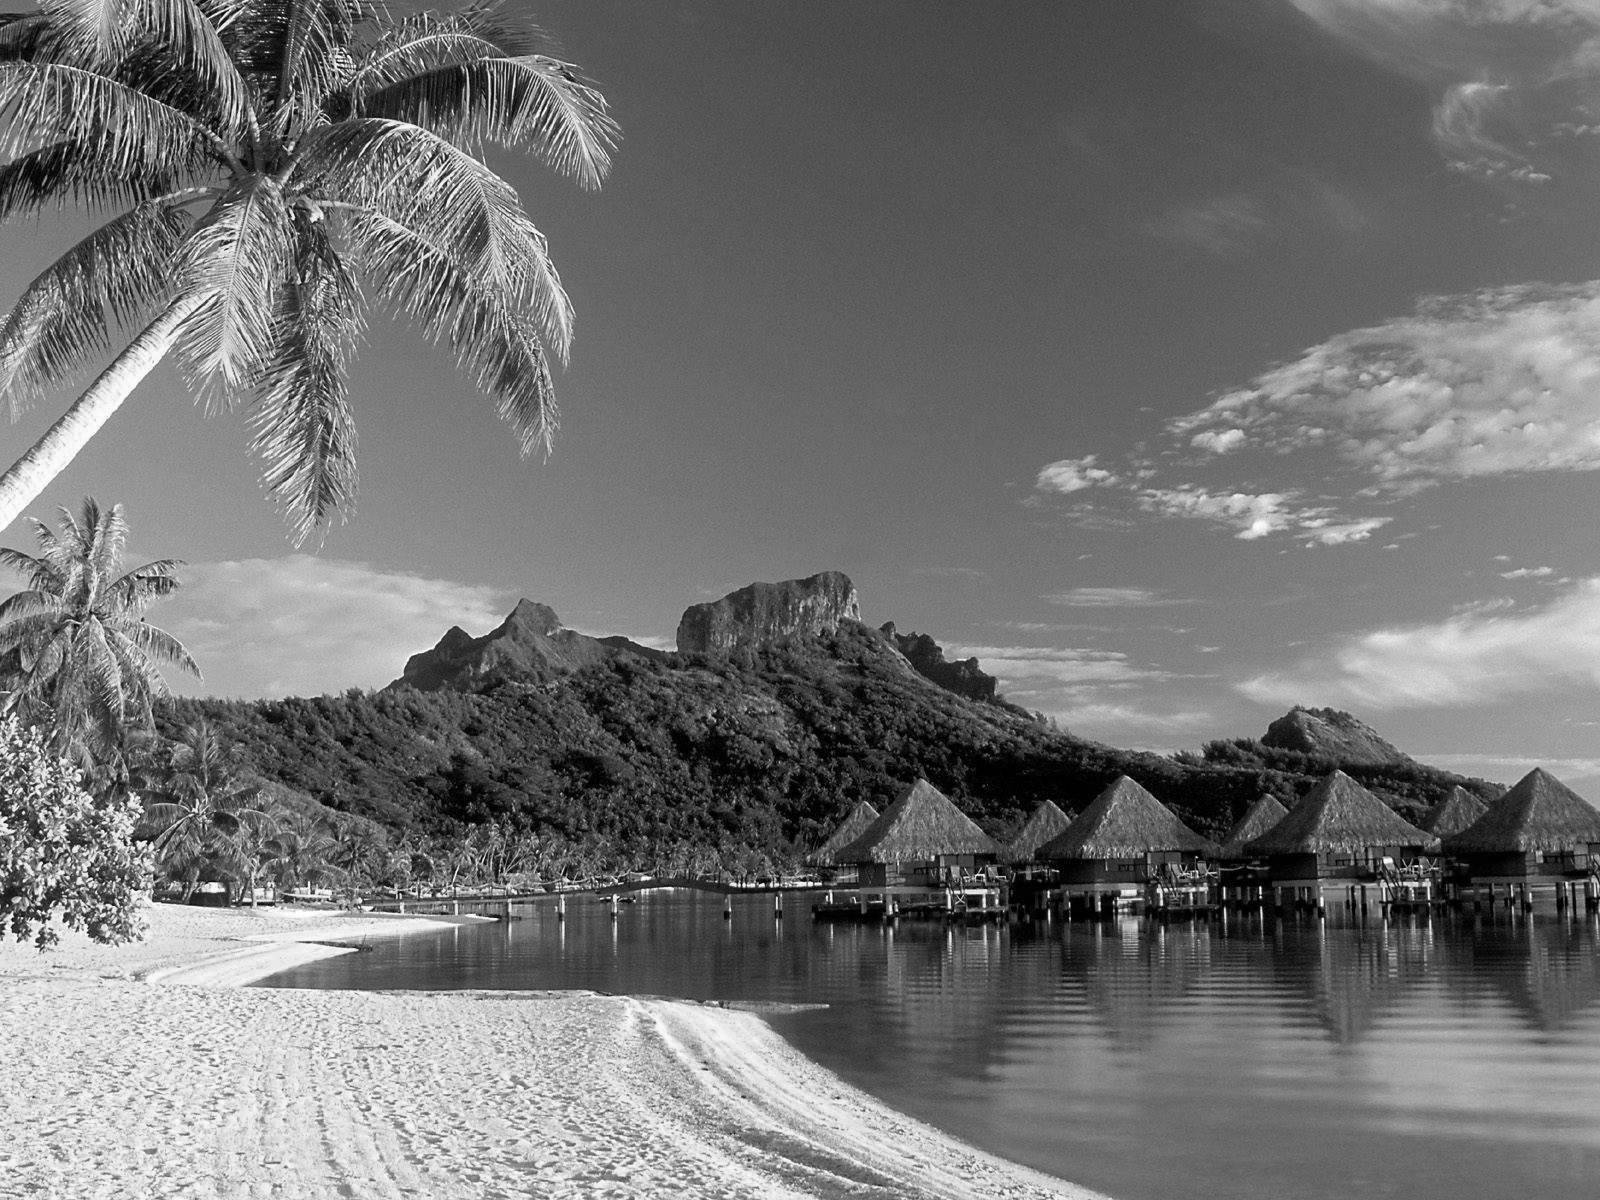 Black and White Wallpapers: Black and White Beach